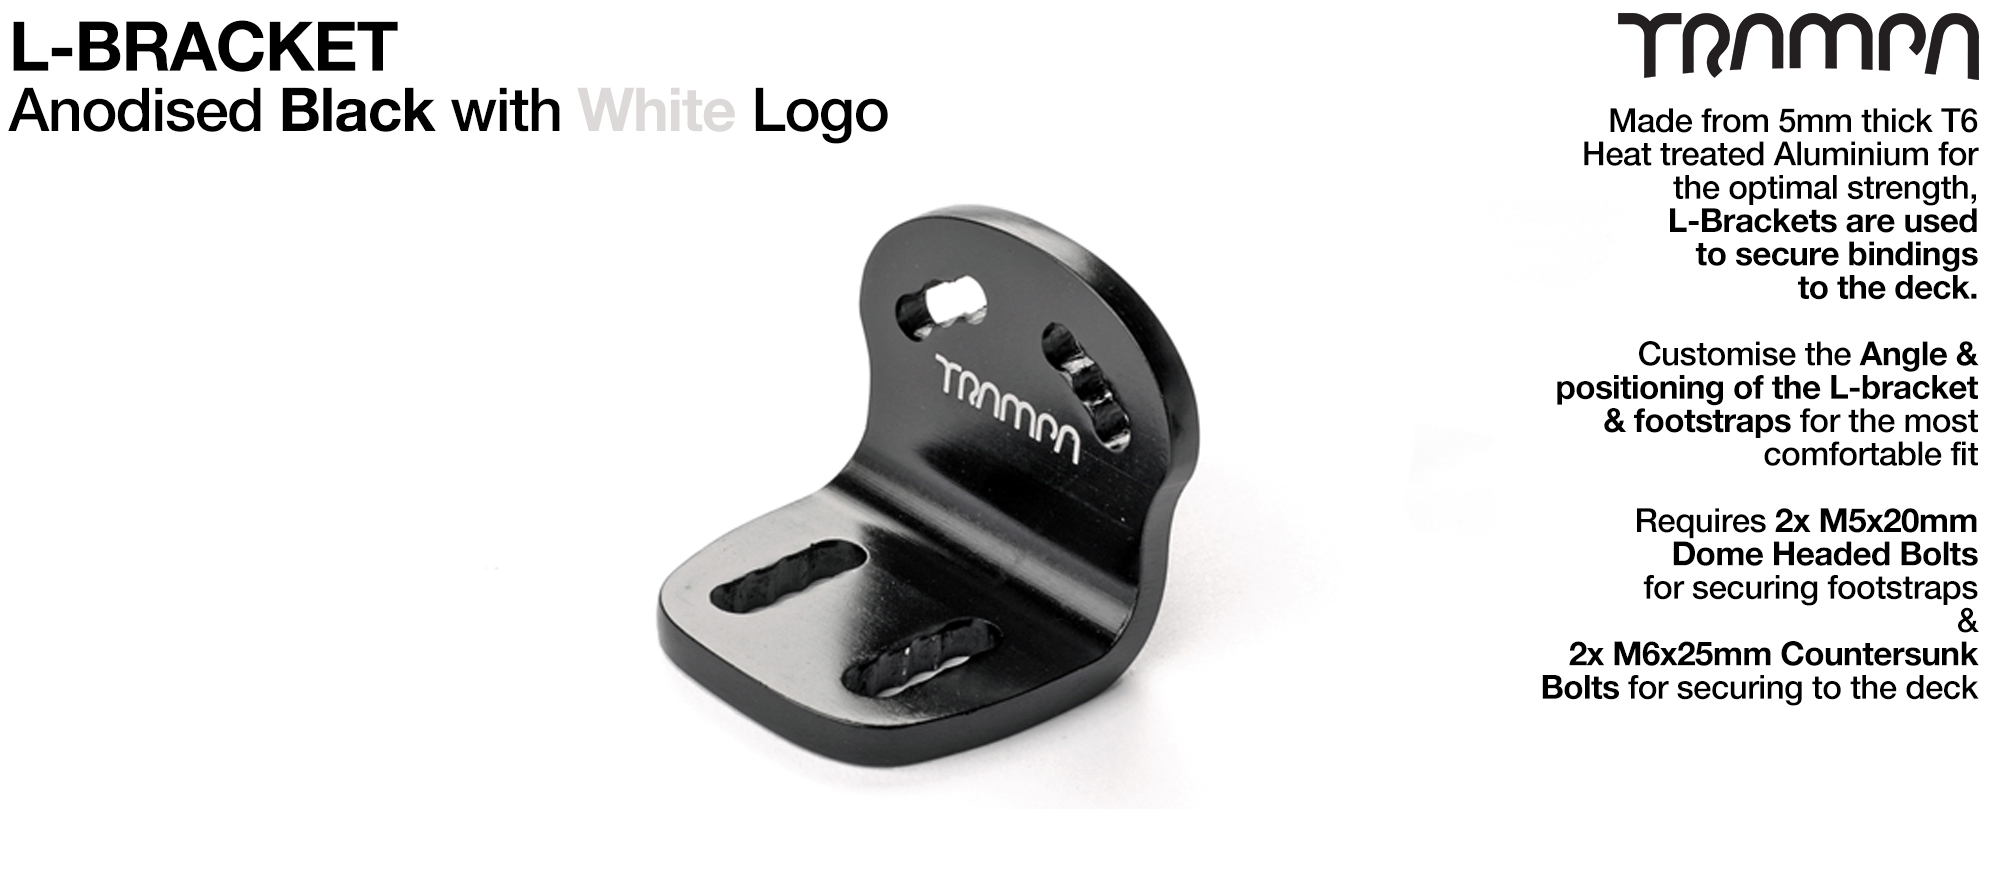 L Bracket - Anodised BLACK with WHITE logo L